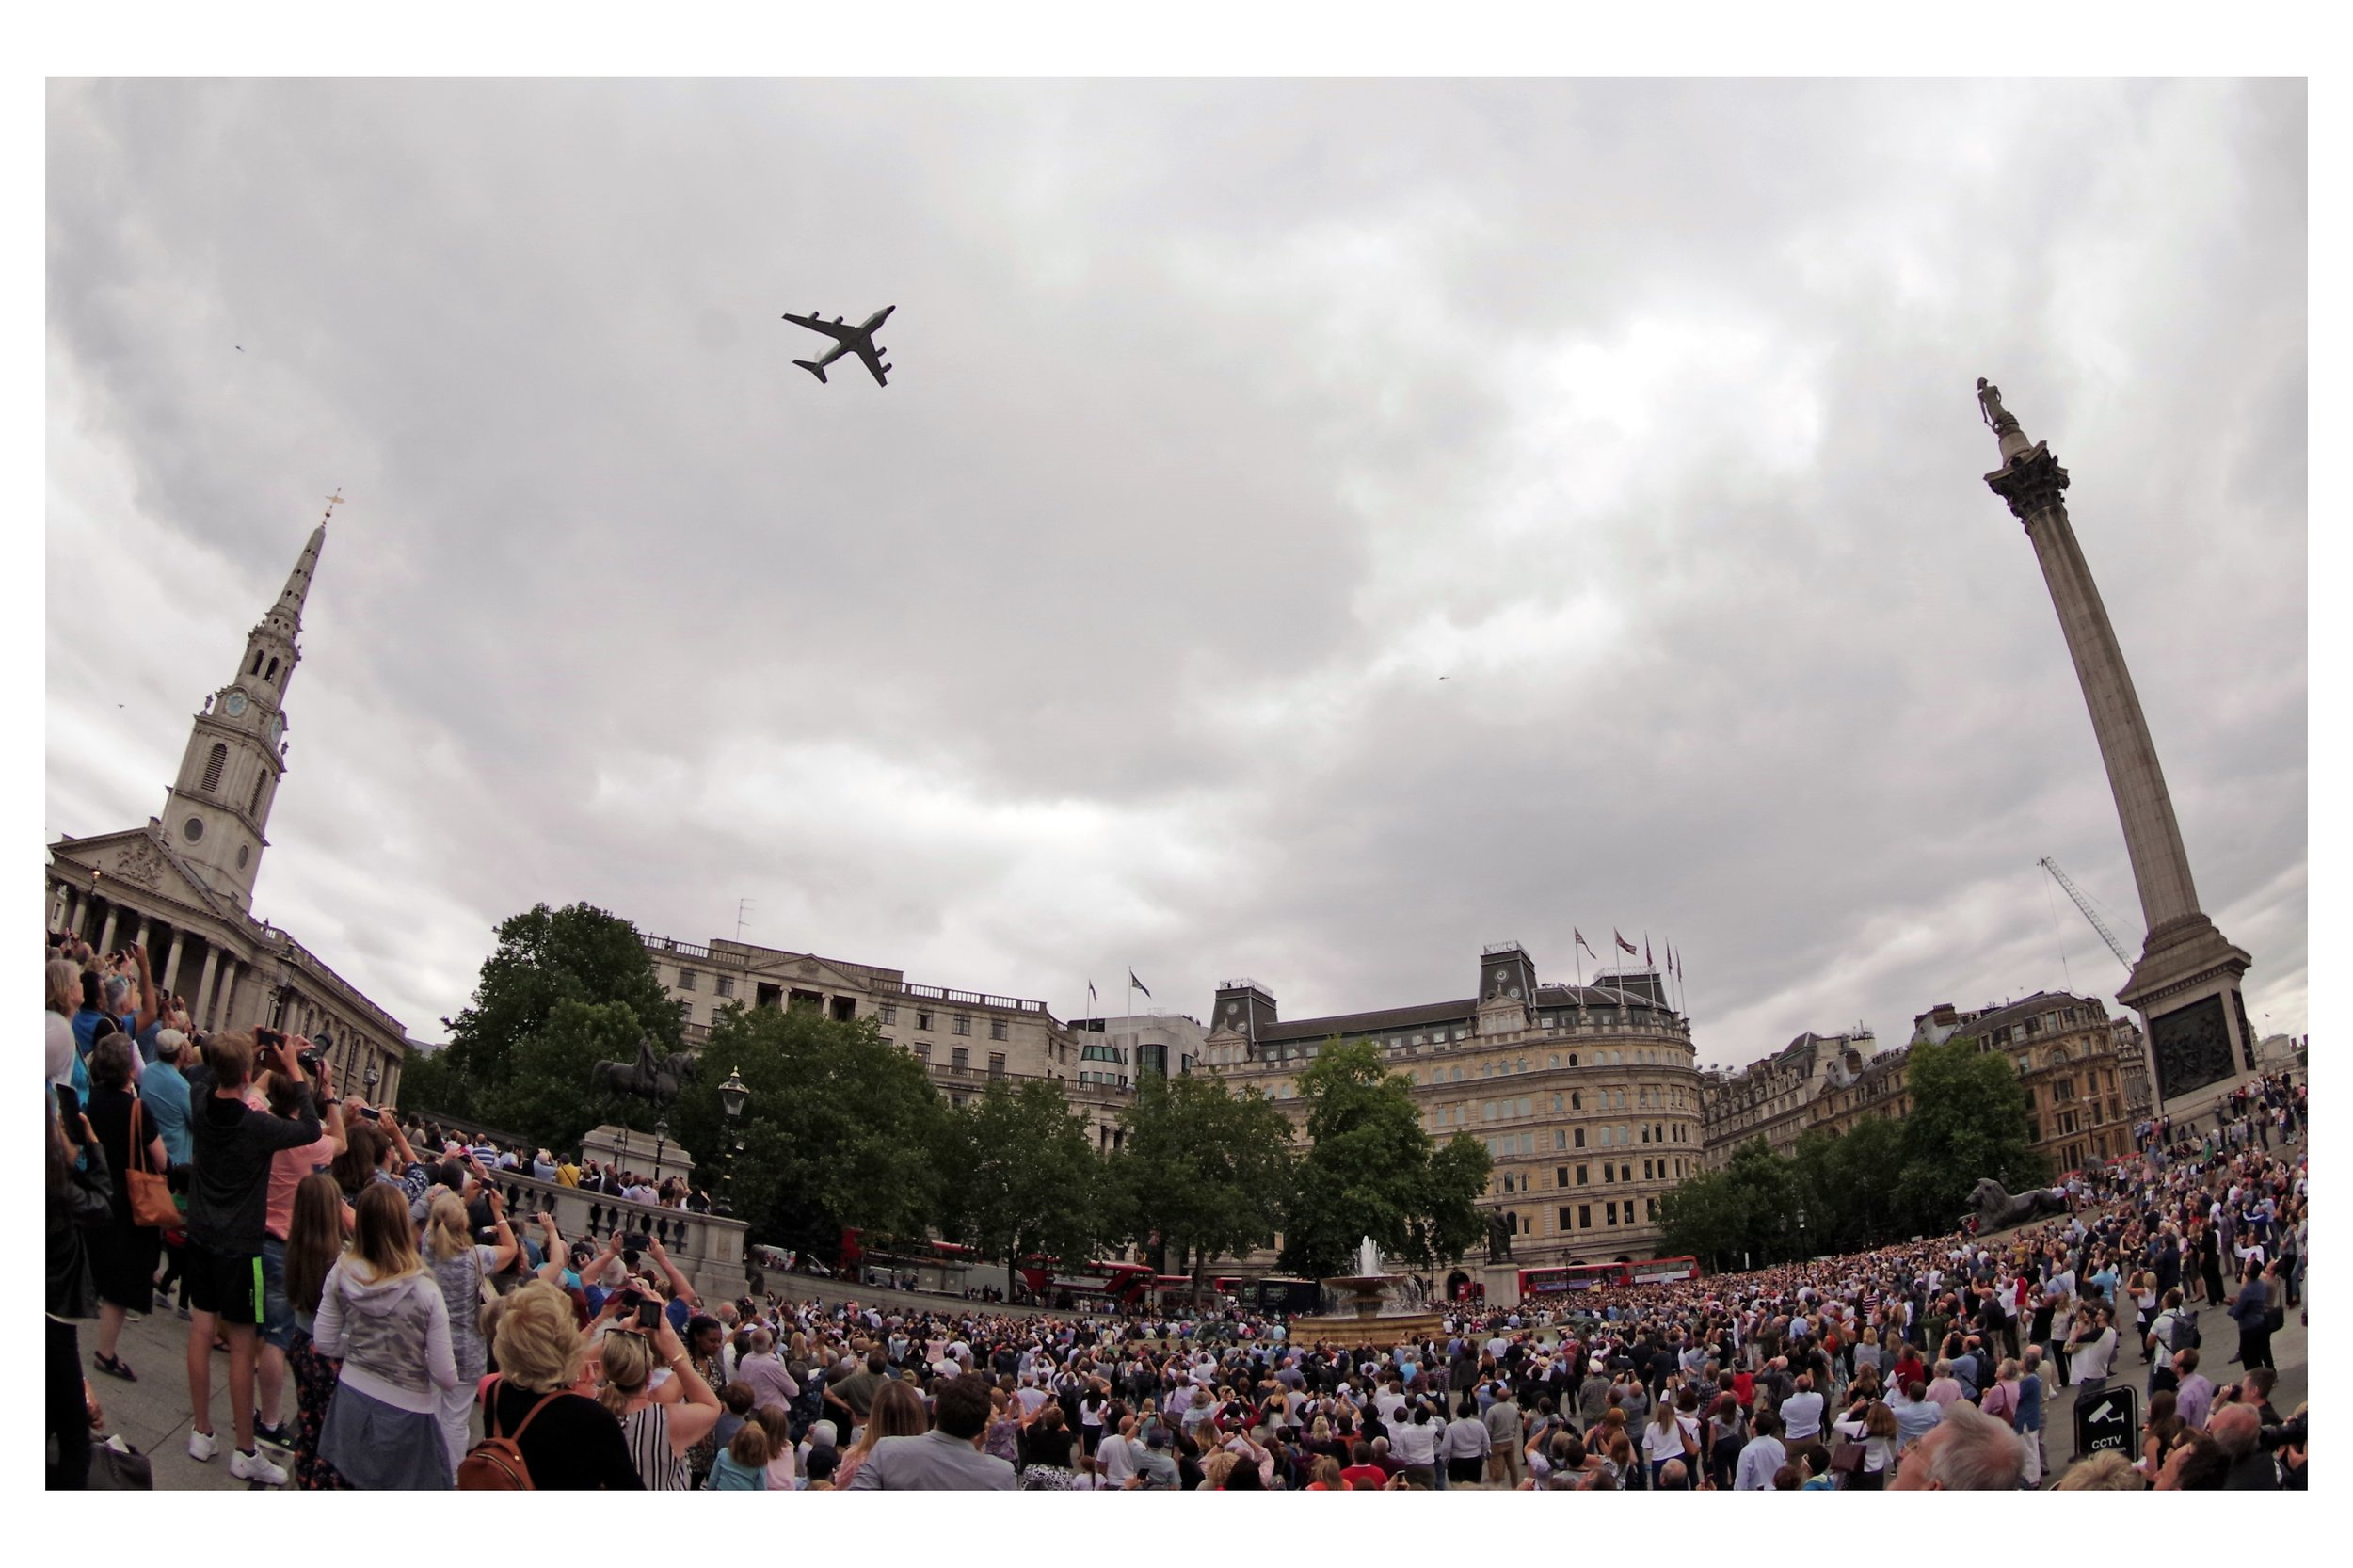 My last major position-shift brought near the top of the stairs where the crowds were most dense, but the planes' flight paths were most direct, plus I could frame the planes with Nelson's Column on the right and either that Church There (or the National Portrait Gallery) on the left.